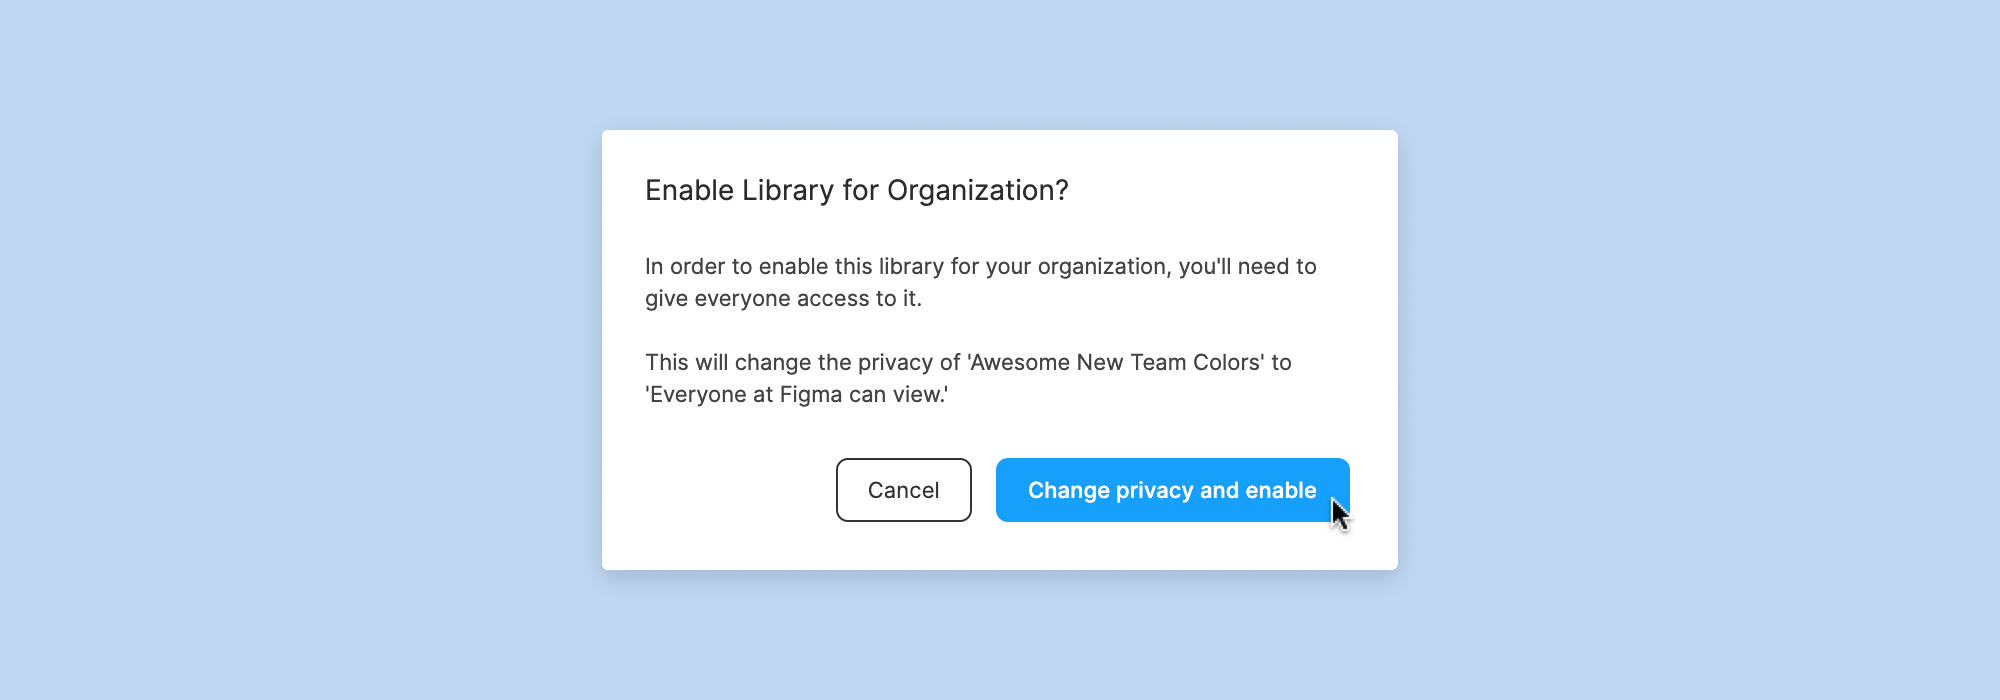 Confirmation screen for 'Change Privacy and enable' action for Library